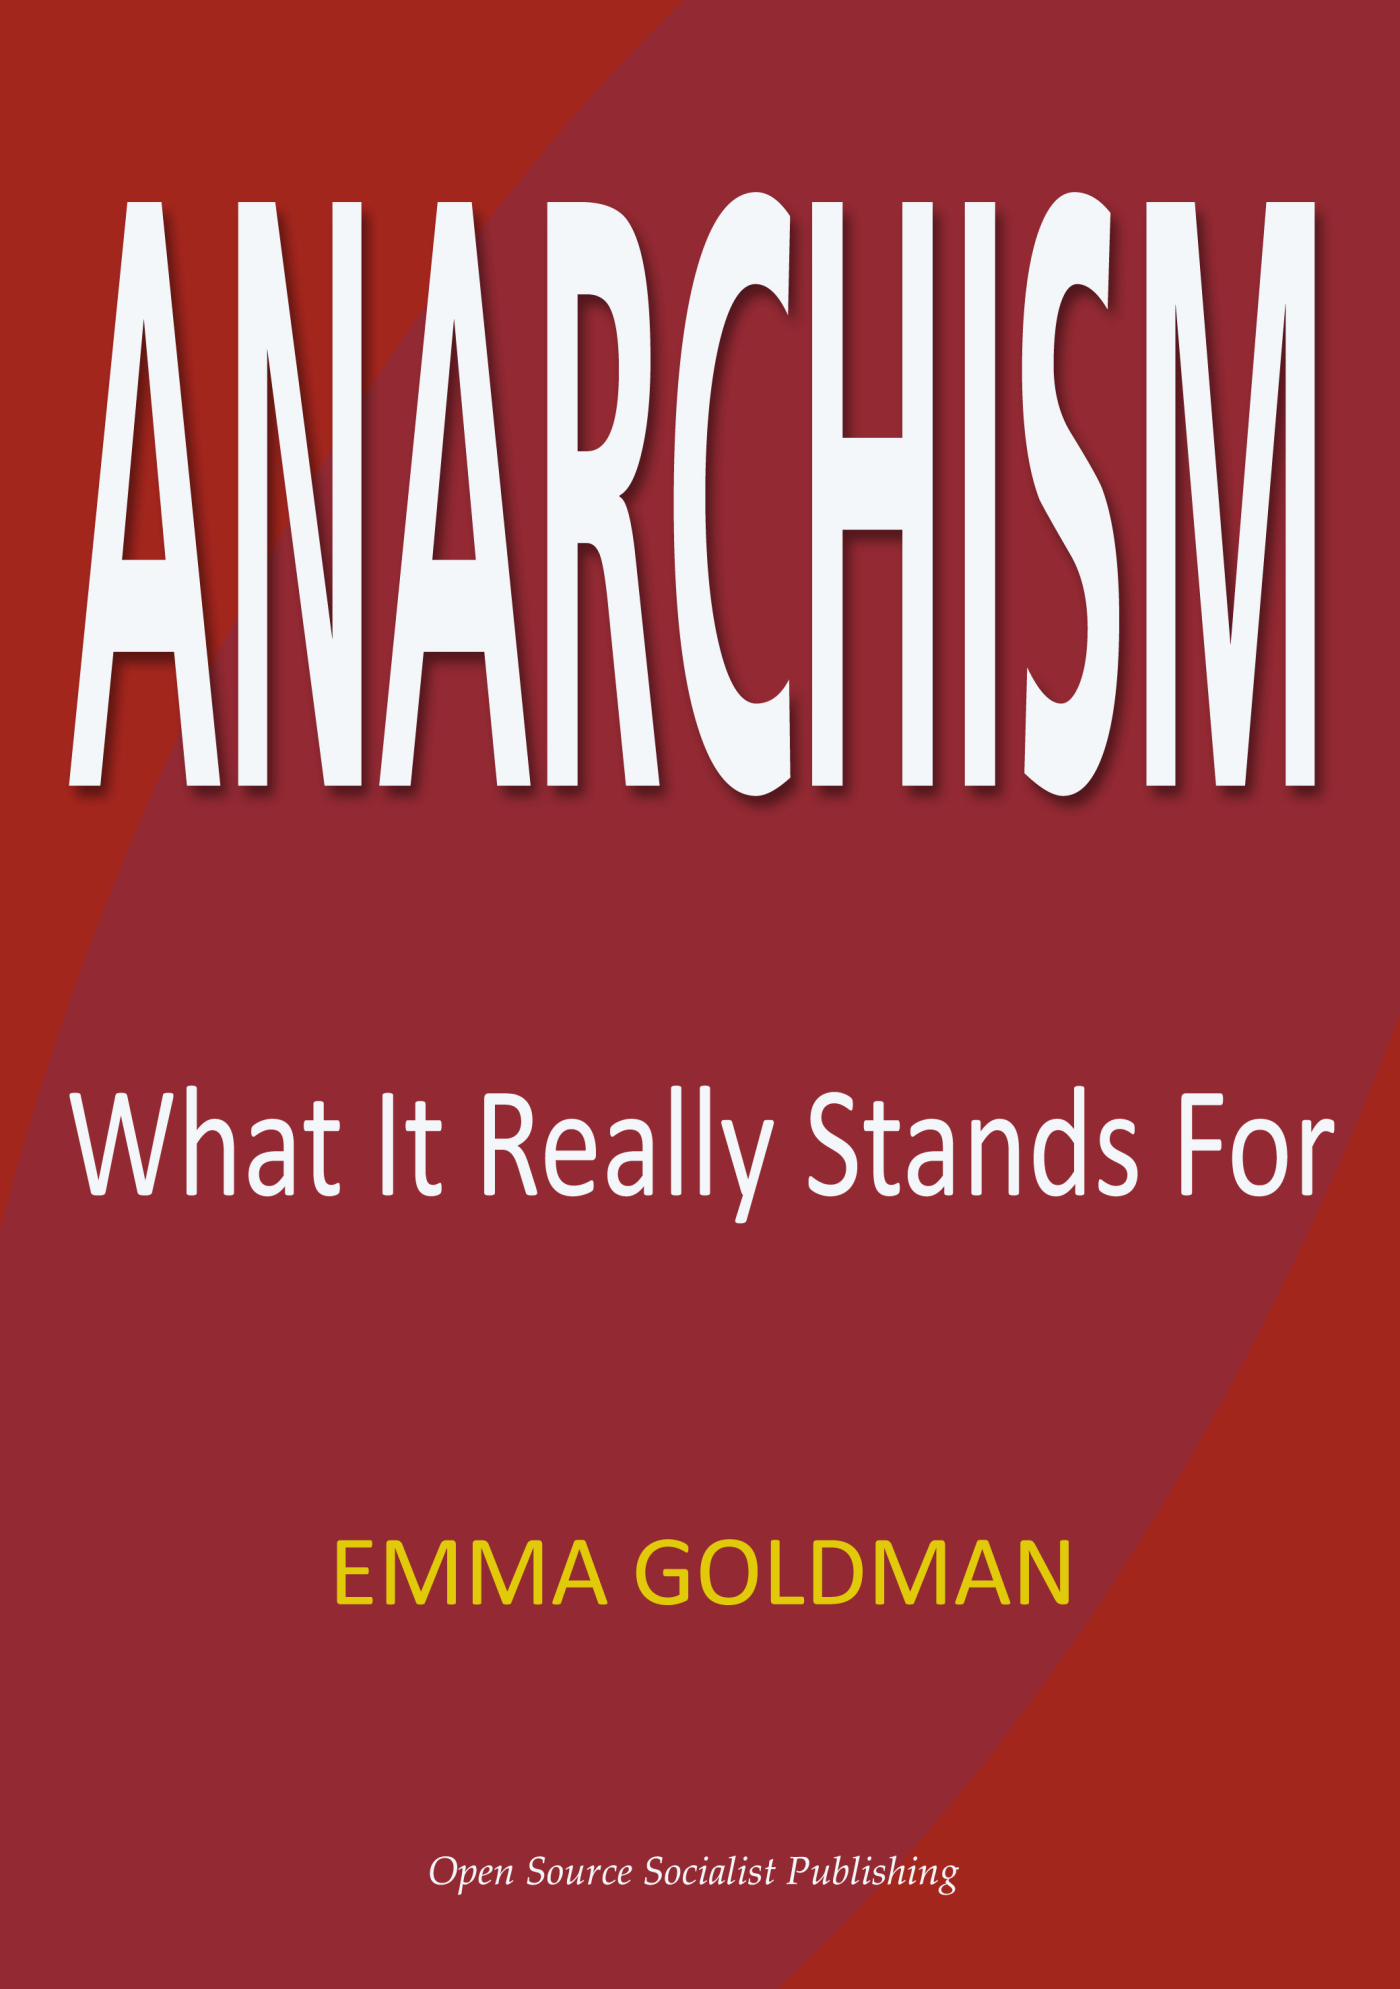 017 Essay Example Anarchism And Other Essays Anarch Wirsf Incredible Emma Goldman Summary Mla Citation Full